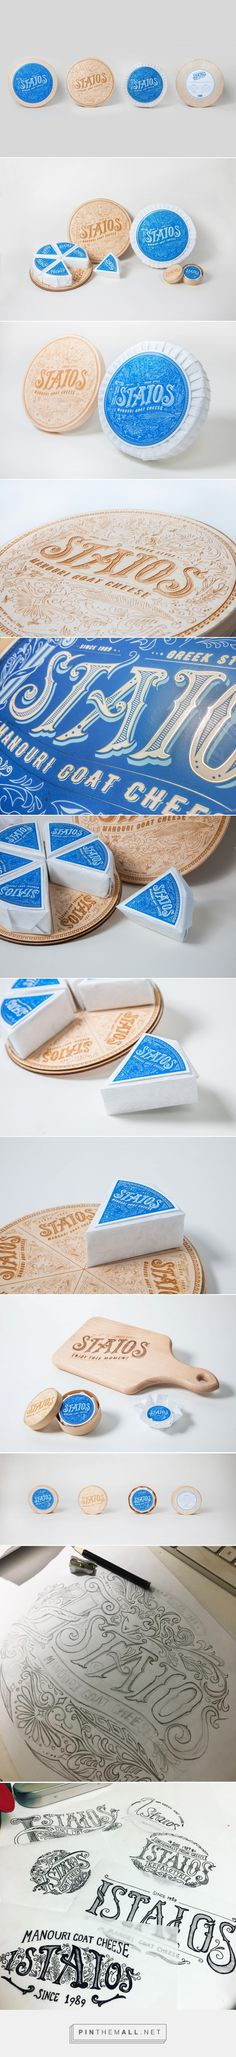 Staios Cheese packaging design by Cece Li - http://www.packagingoftheworld.com/2017/06/staios-cheese.html